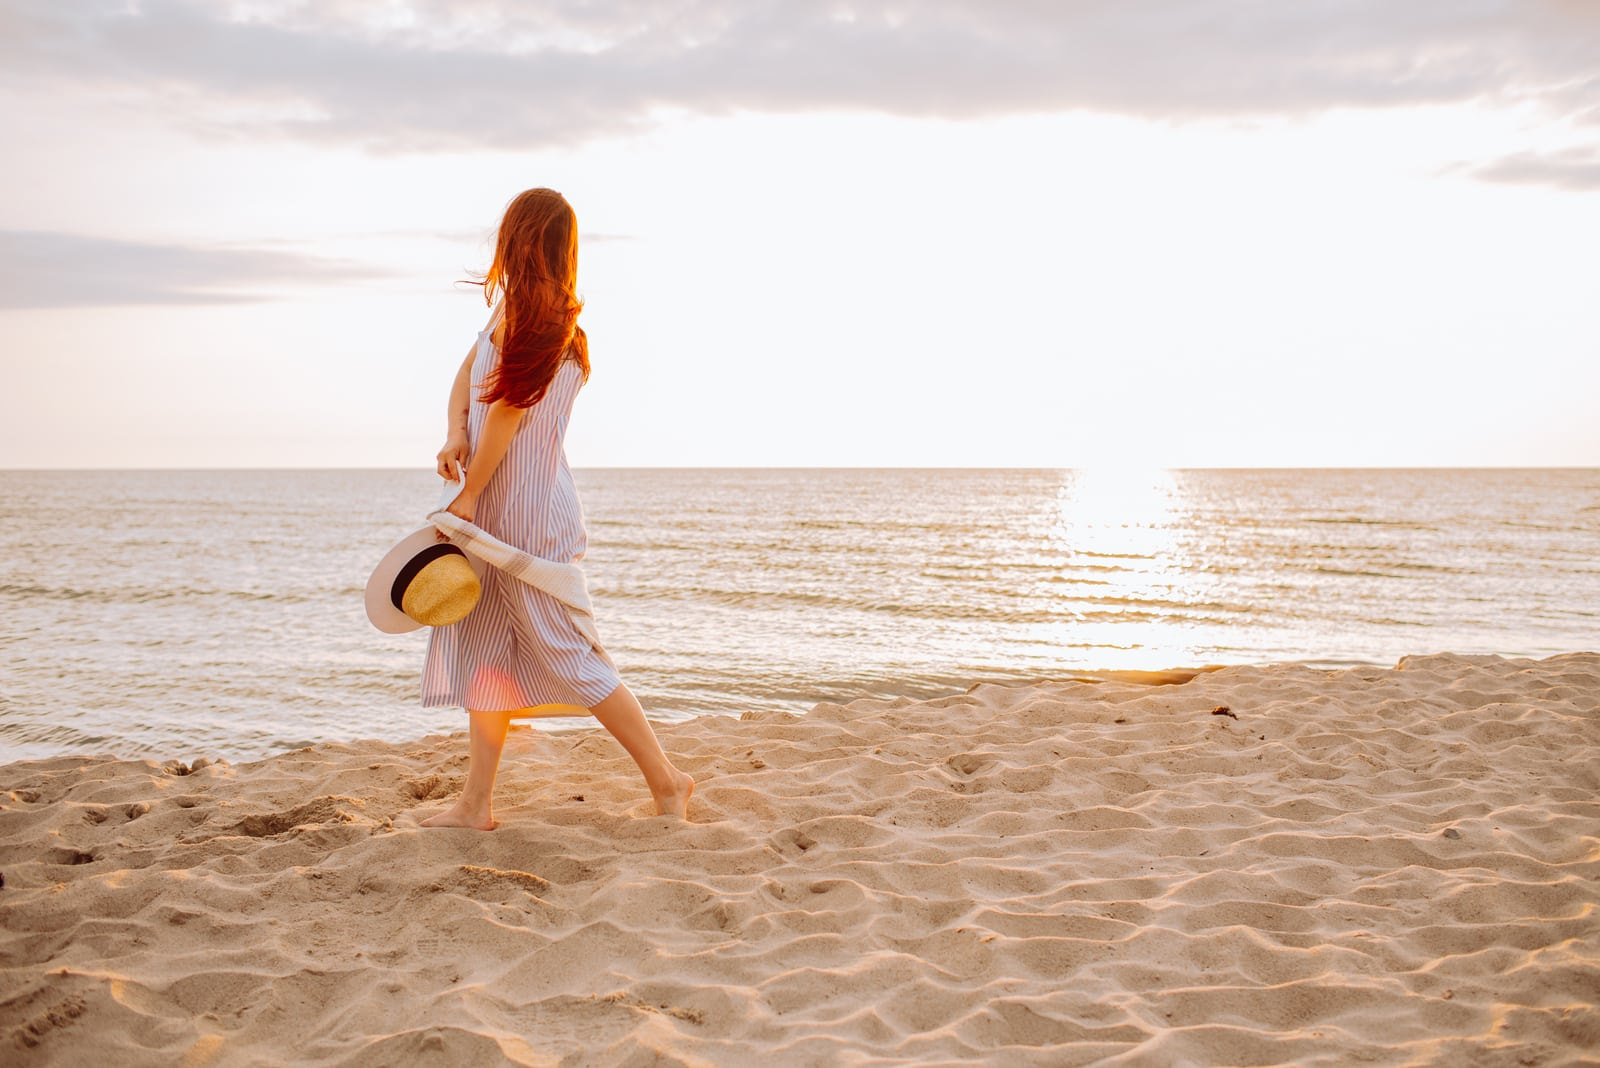 woman in a dress holding straw hat and walking alone on empty sand beach